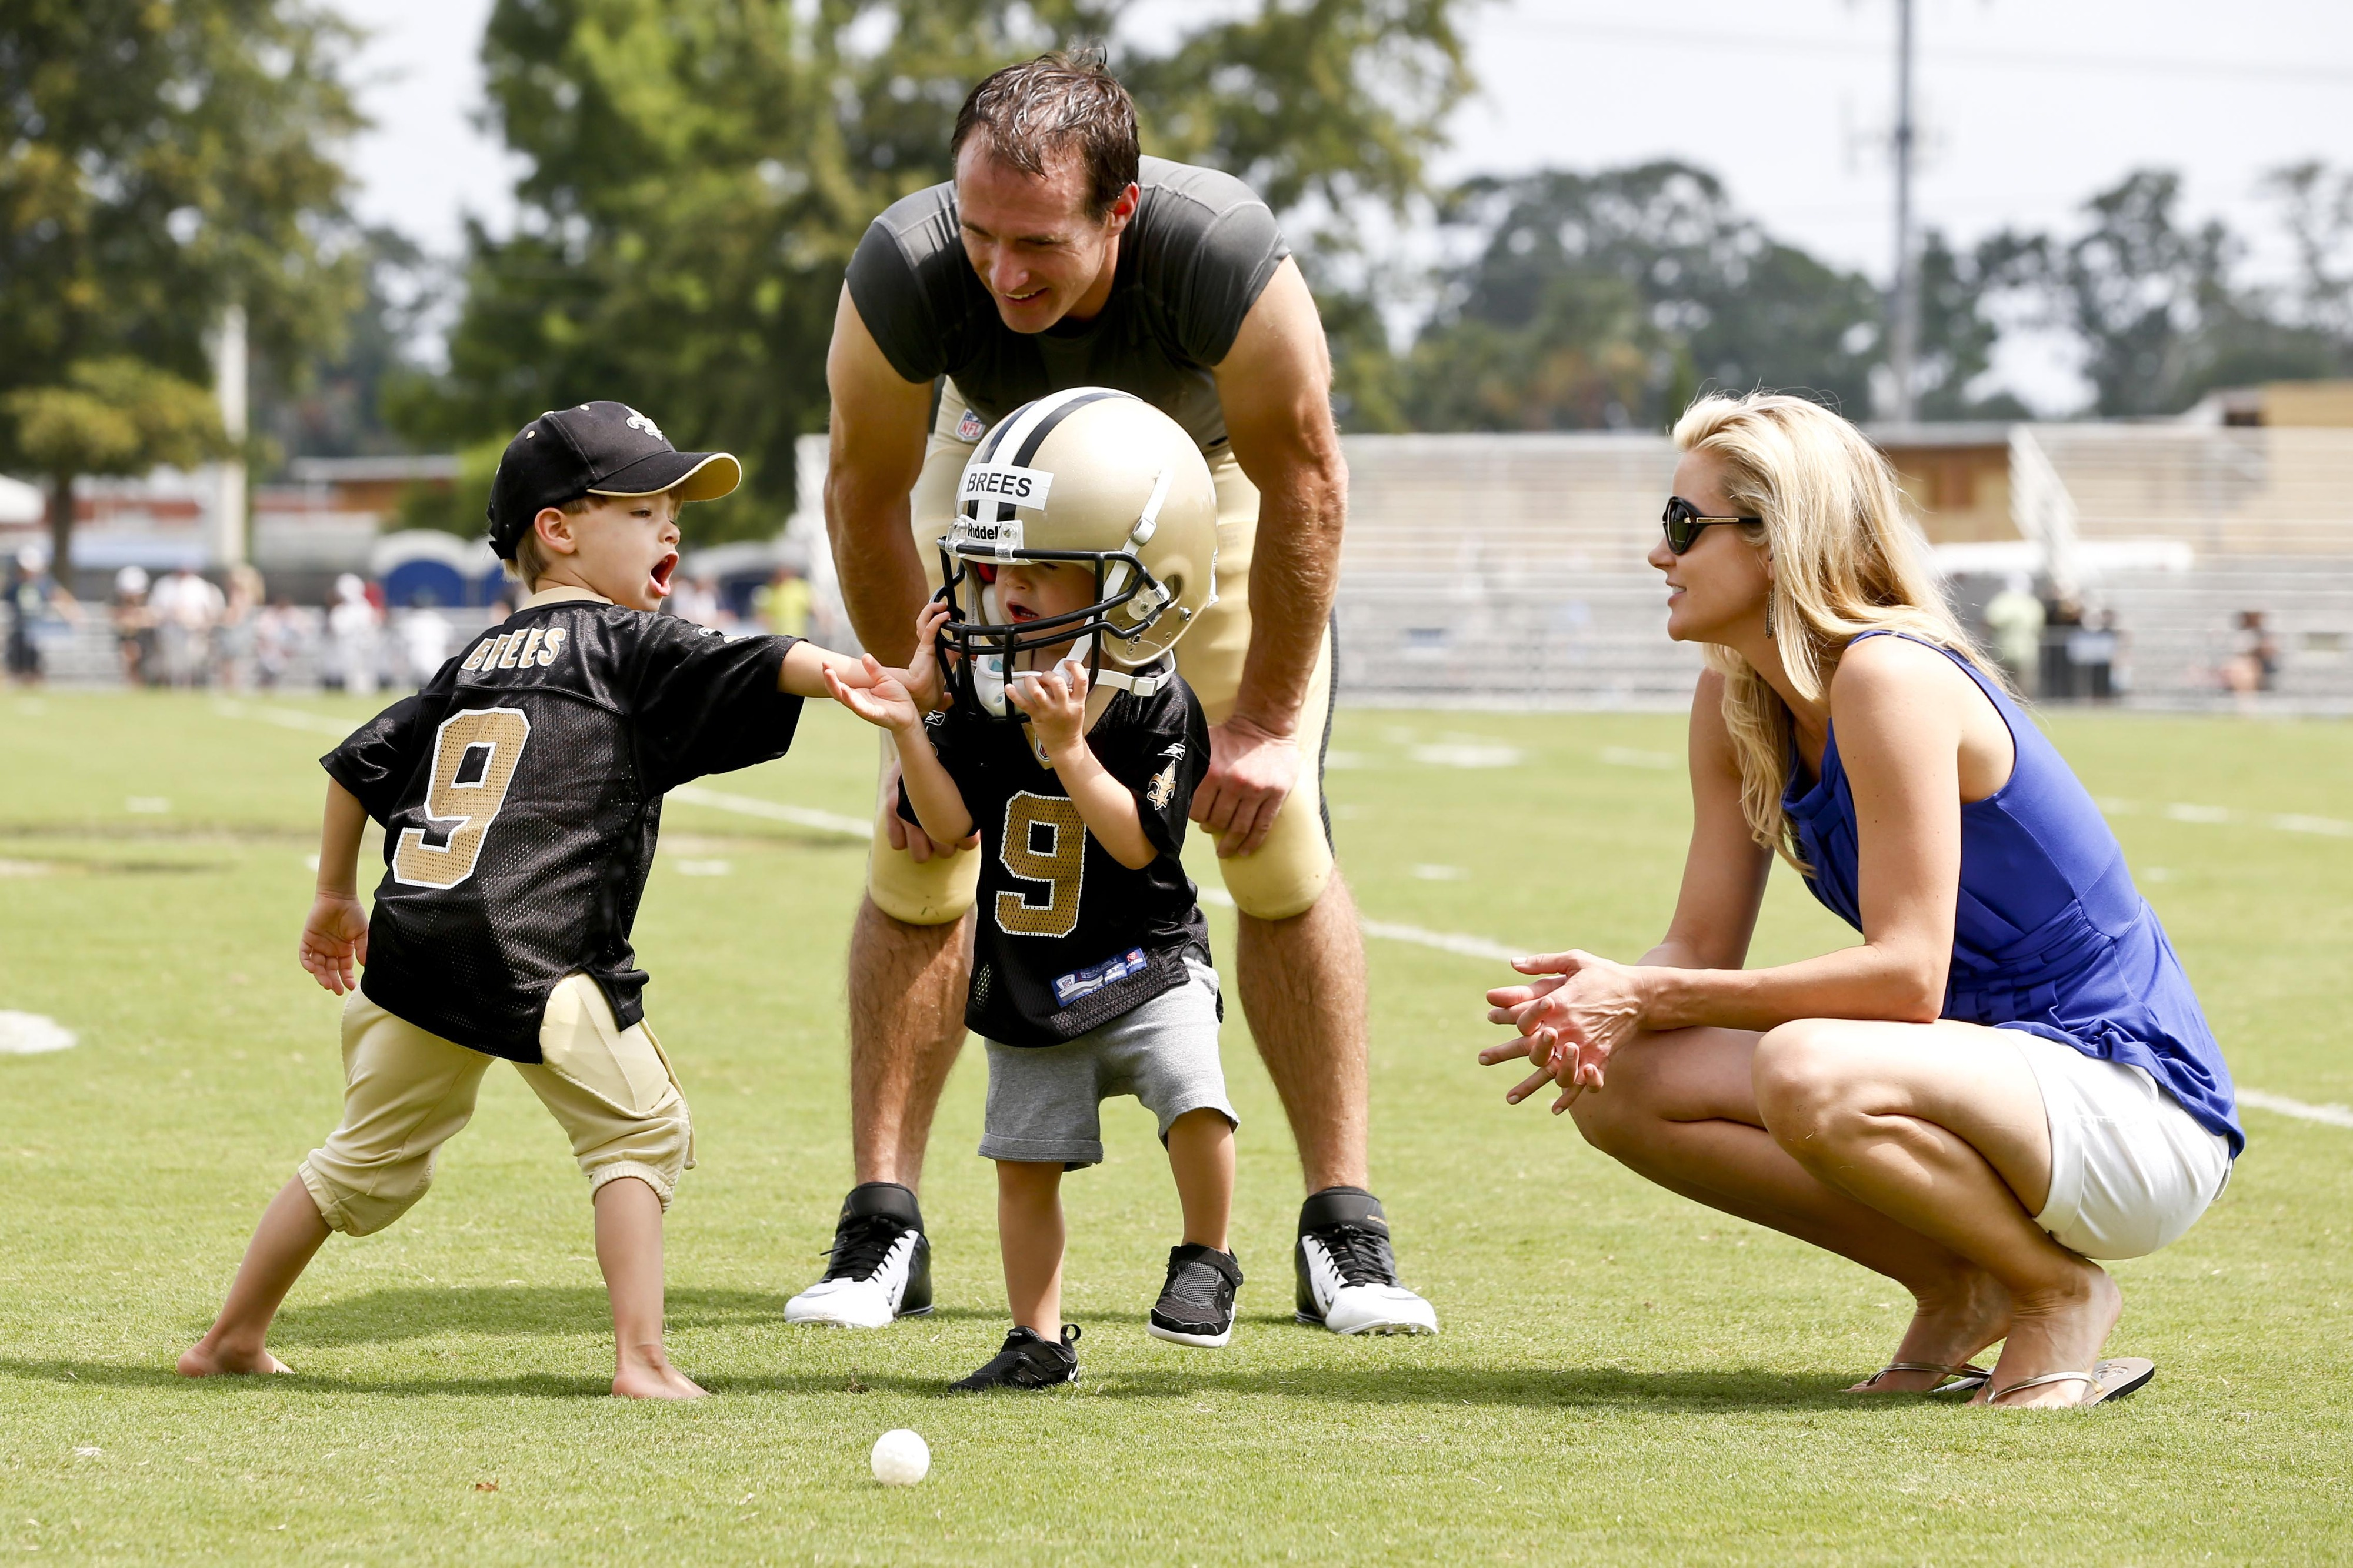 Drew Brees talked football and family with CSC in a recent interview.